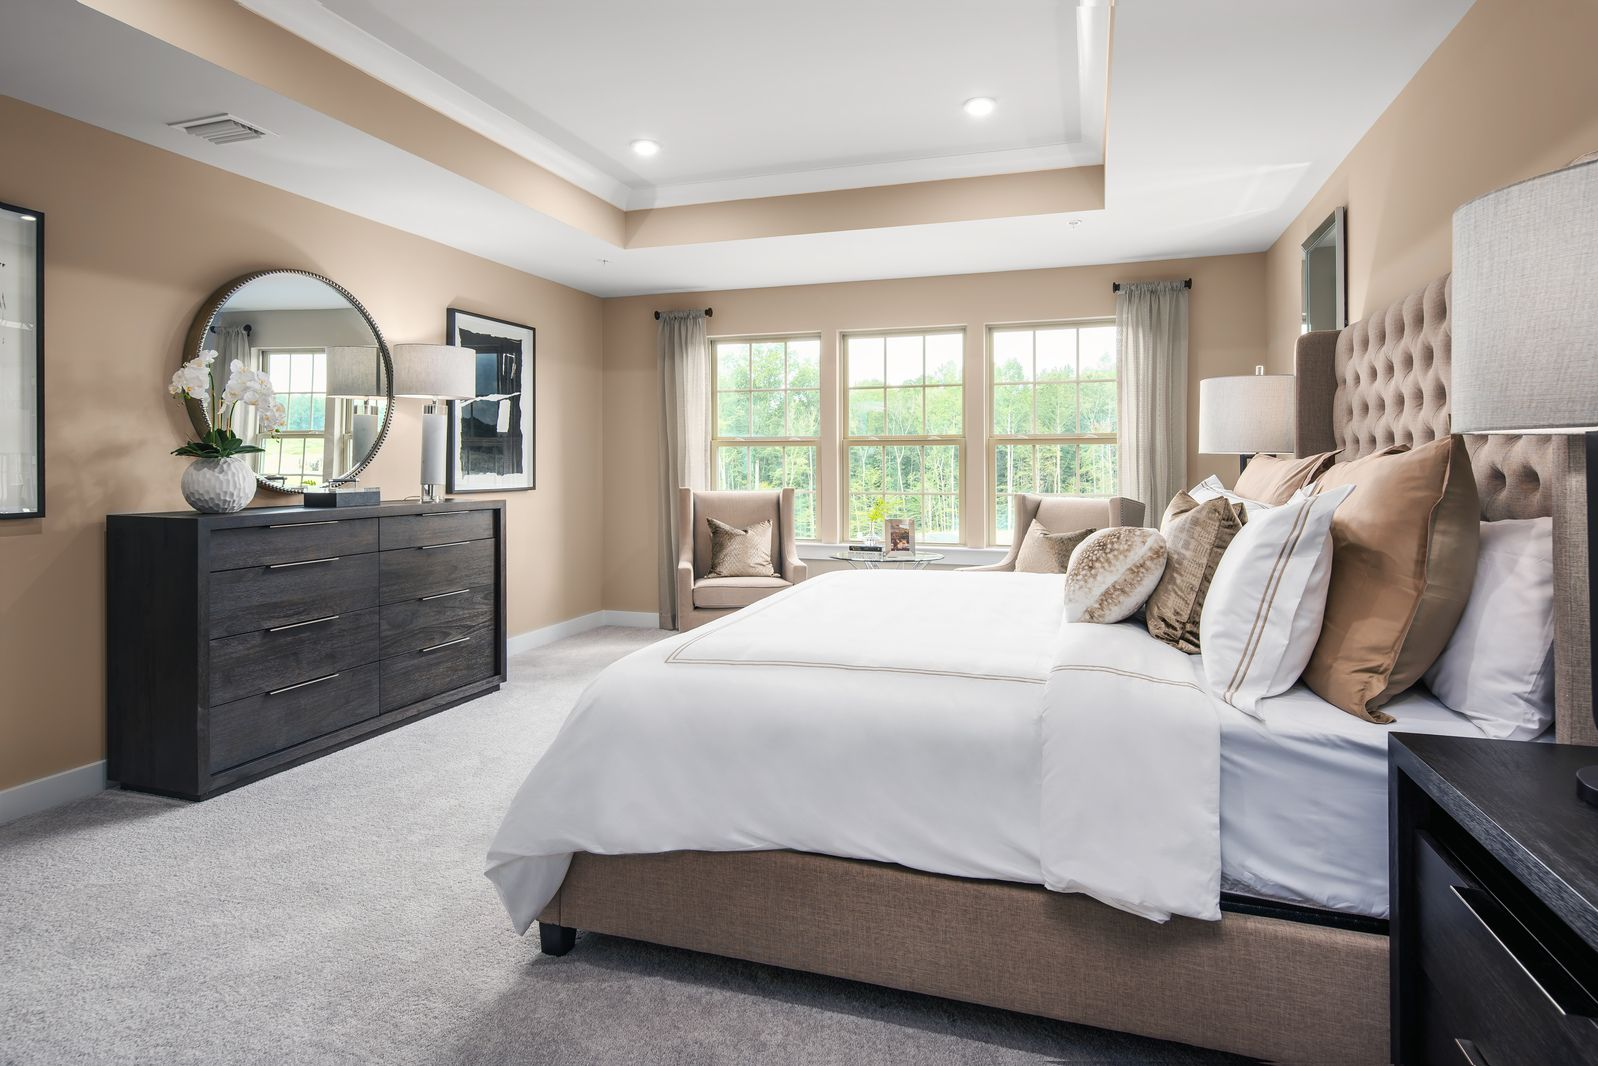 Bedroom featured in the Powell By Ryan Homes in Sussex, DE